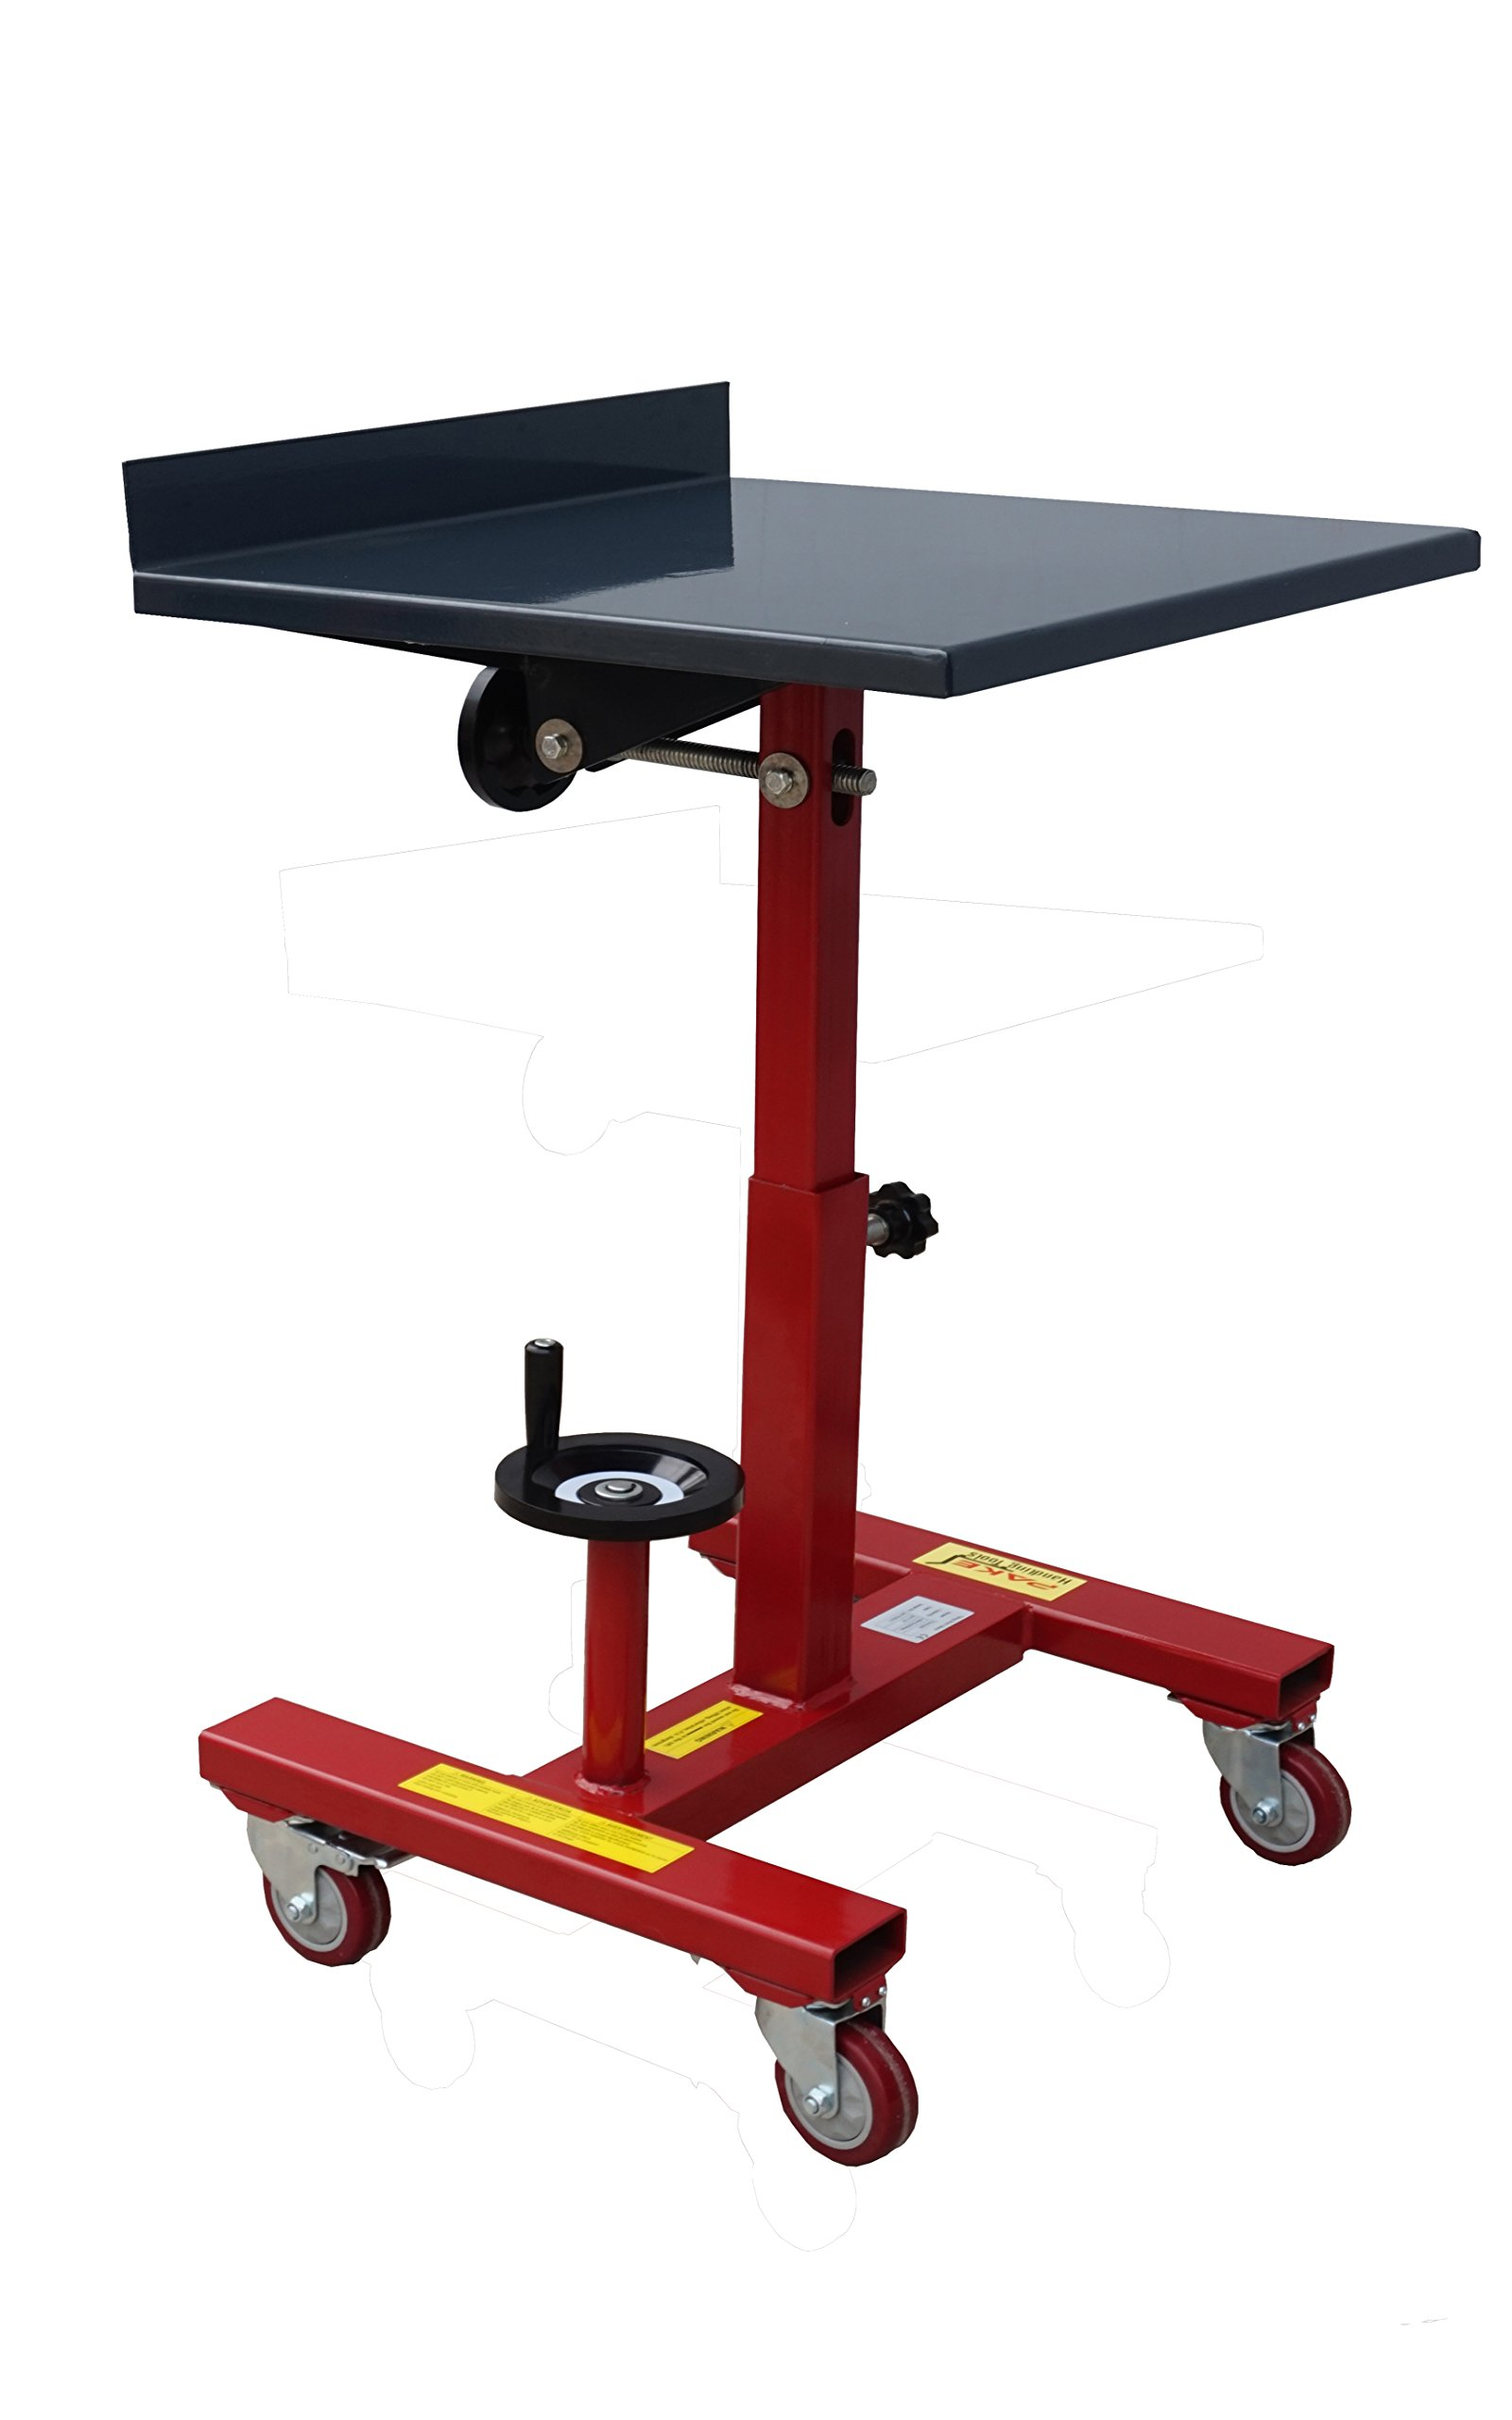 Pake Handling Tools - Tilting Work Table, 300 lbs Capacity, 24x24'', 31.5 to 42'' Height, 30 Degree Tilting